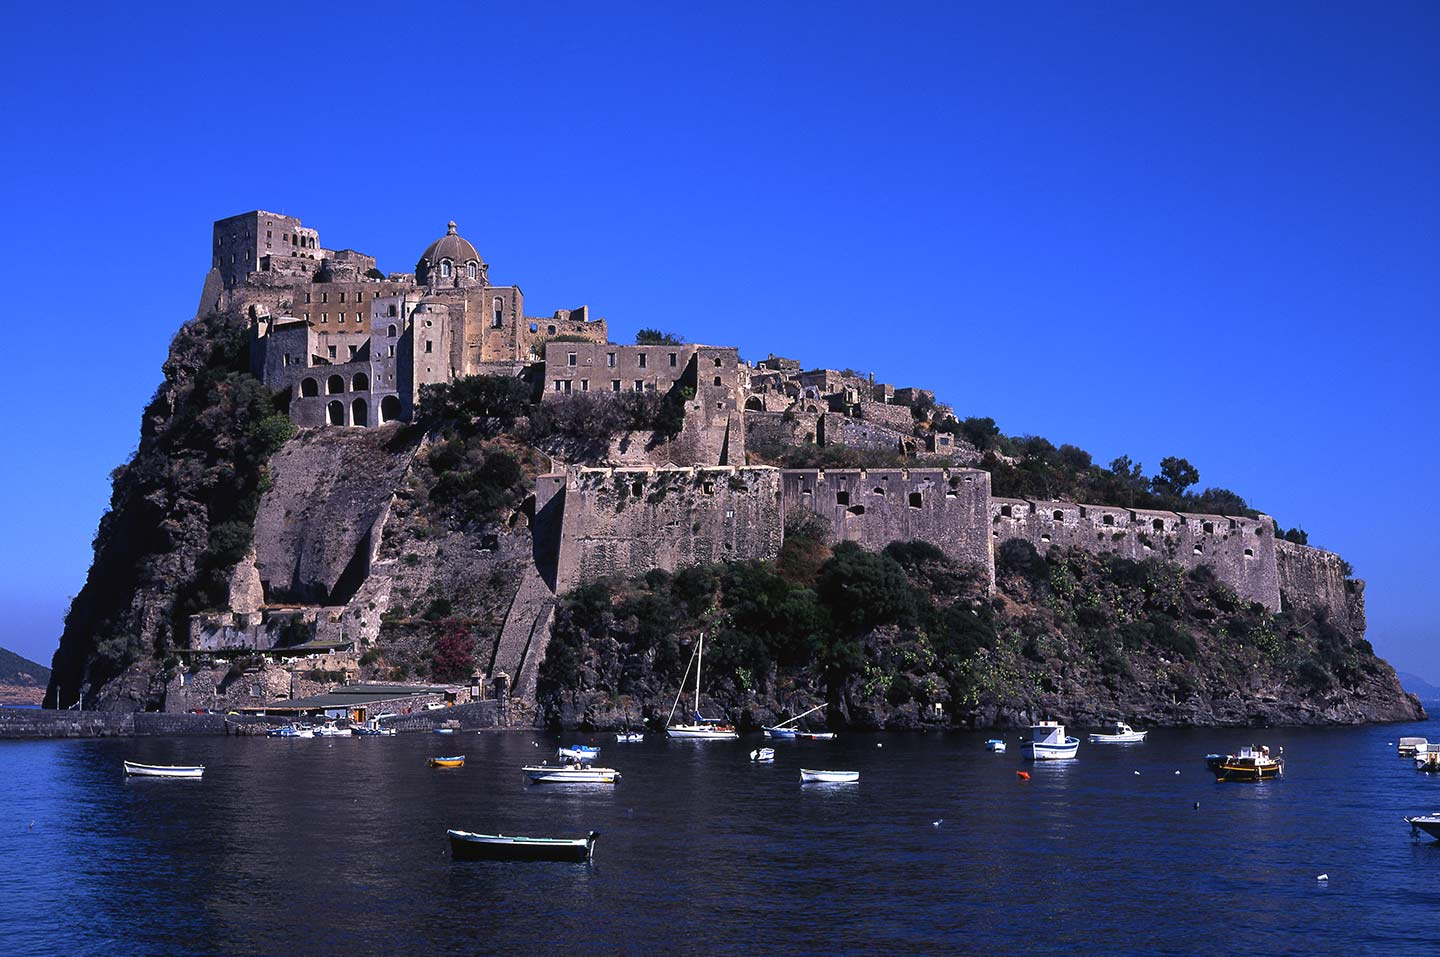 Image of the Castello Aragonese in Ischia, Italy